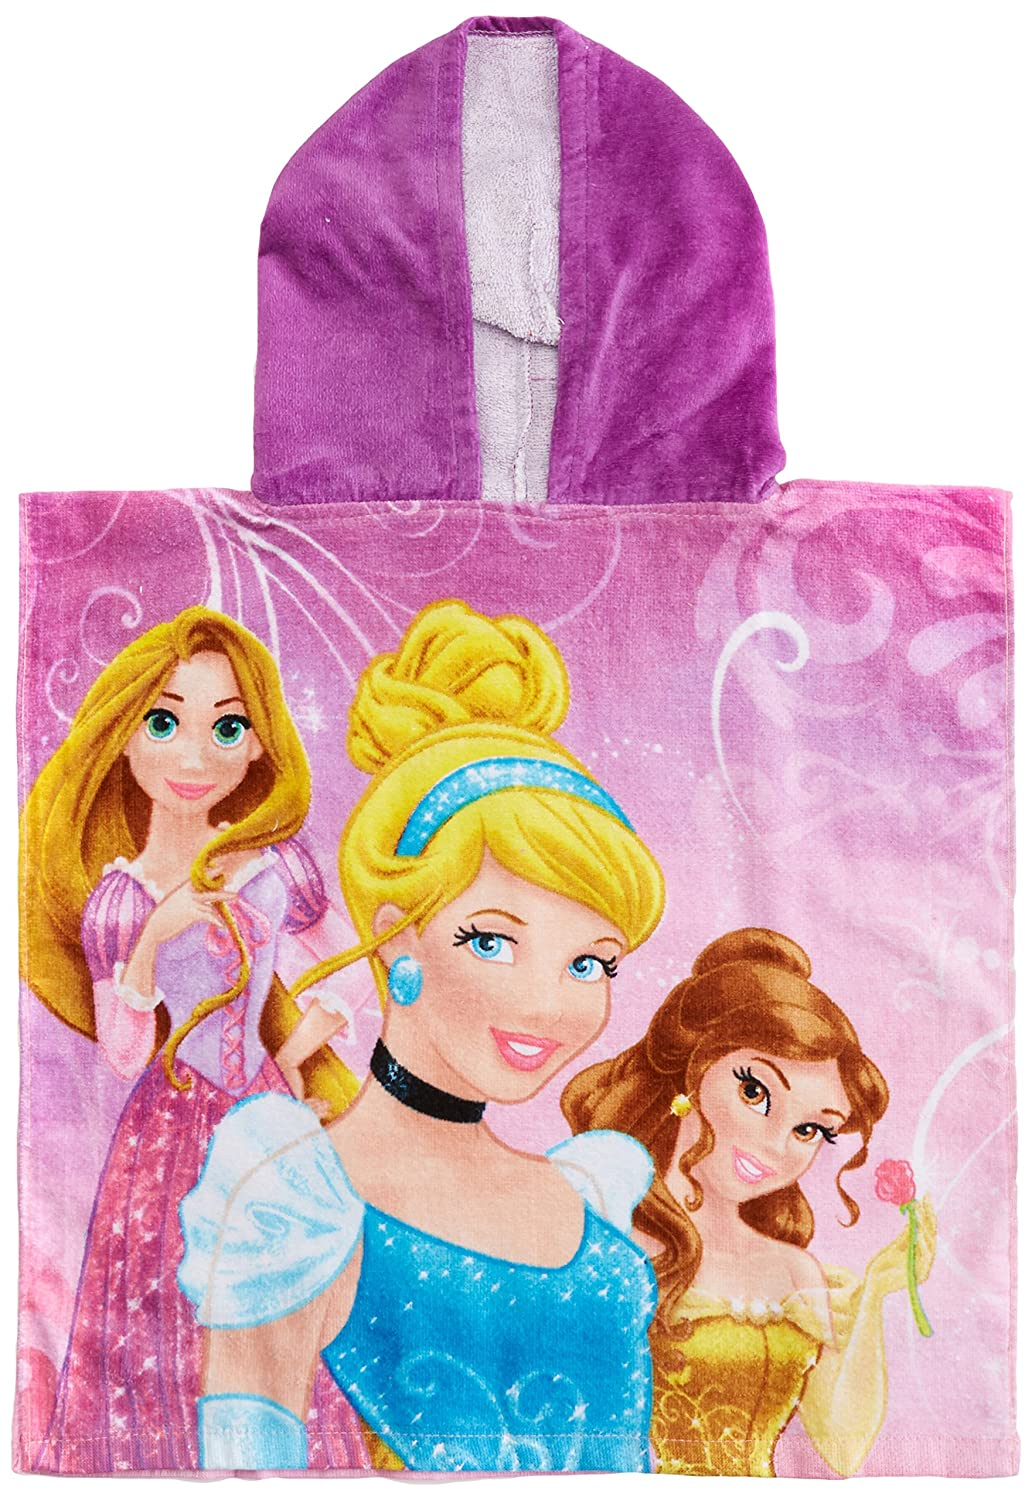 Disney Girl's Cover-up Disney QE1784 Girl' s Cover-up Purple (Purple)